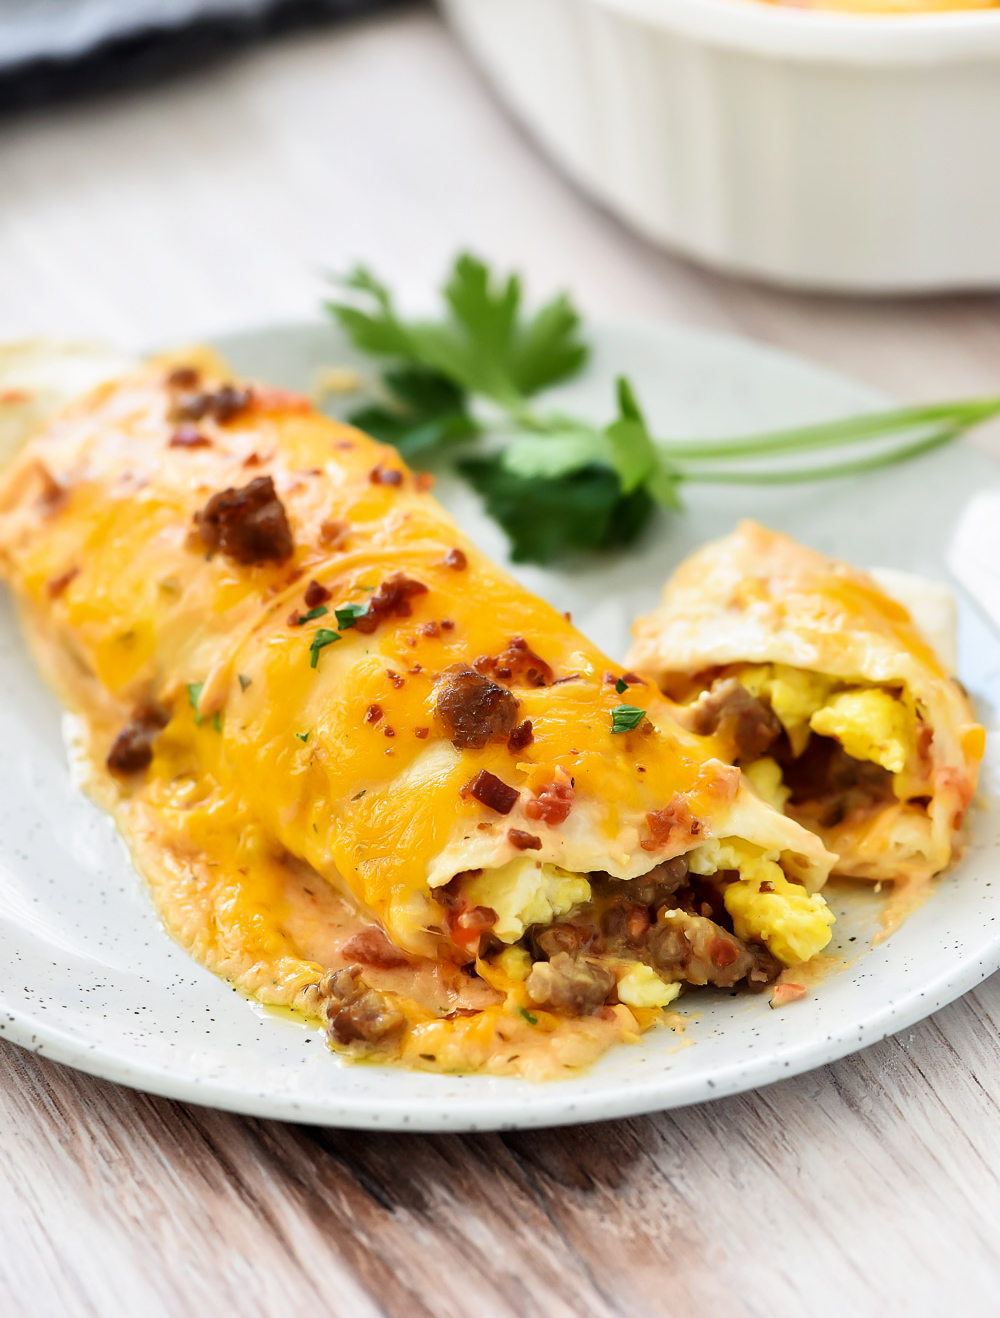 Breakfast Enchiladas are filled with eggs, bacon, sausage and cheese covered in flour tortillas and enchilada salsa. Life-in-the-Lofthouse.com